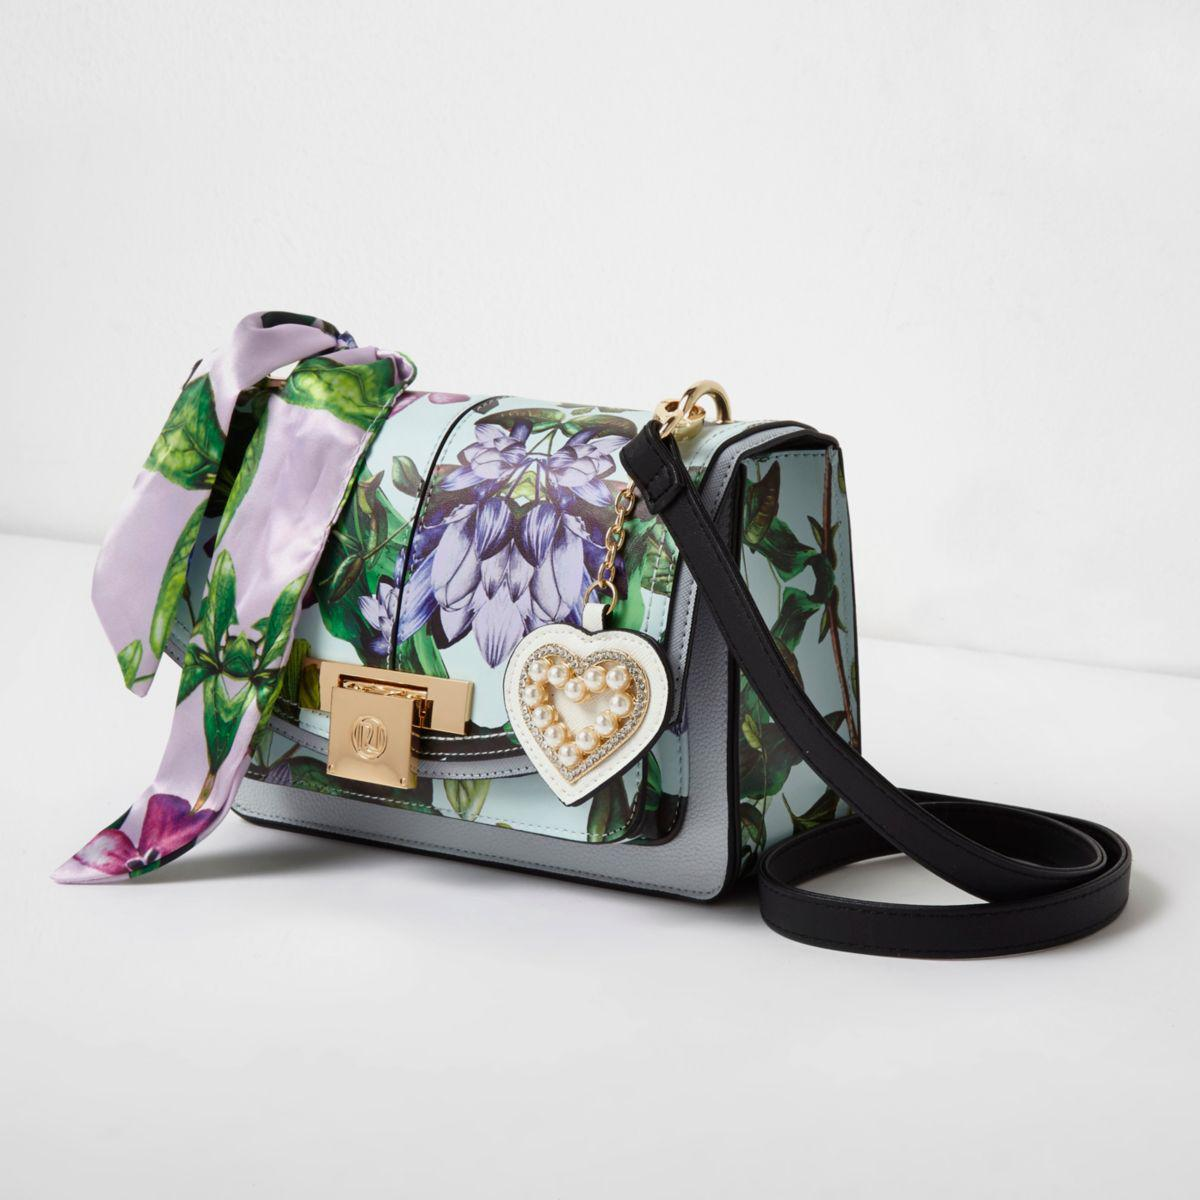 Lyst - River Island Blue Floral Print Lock Front Cross Body Bag Blue Floral Print Lock Front ...